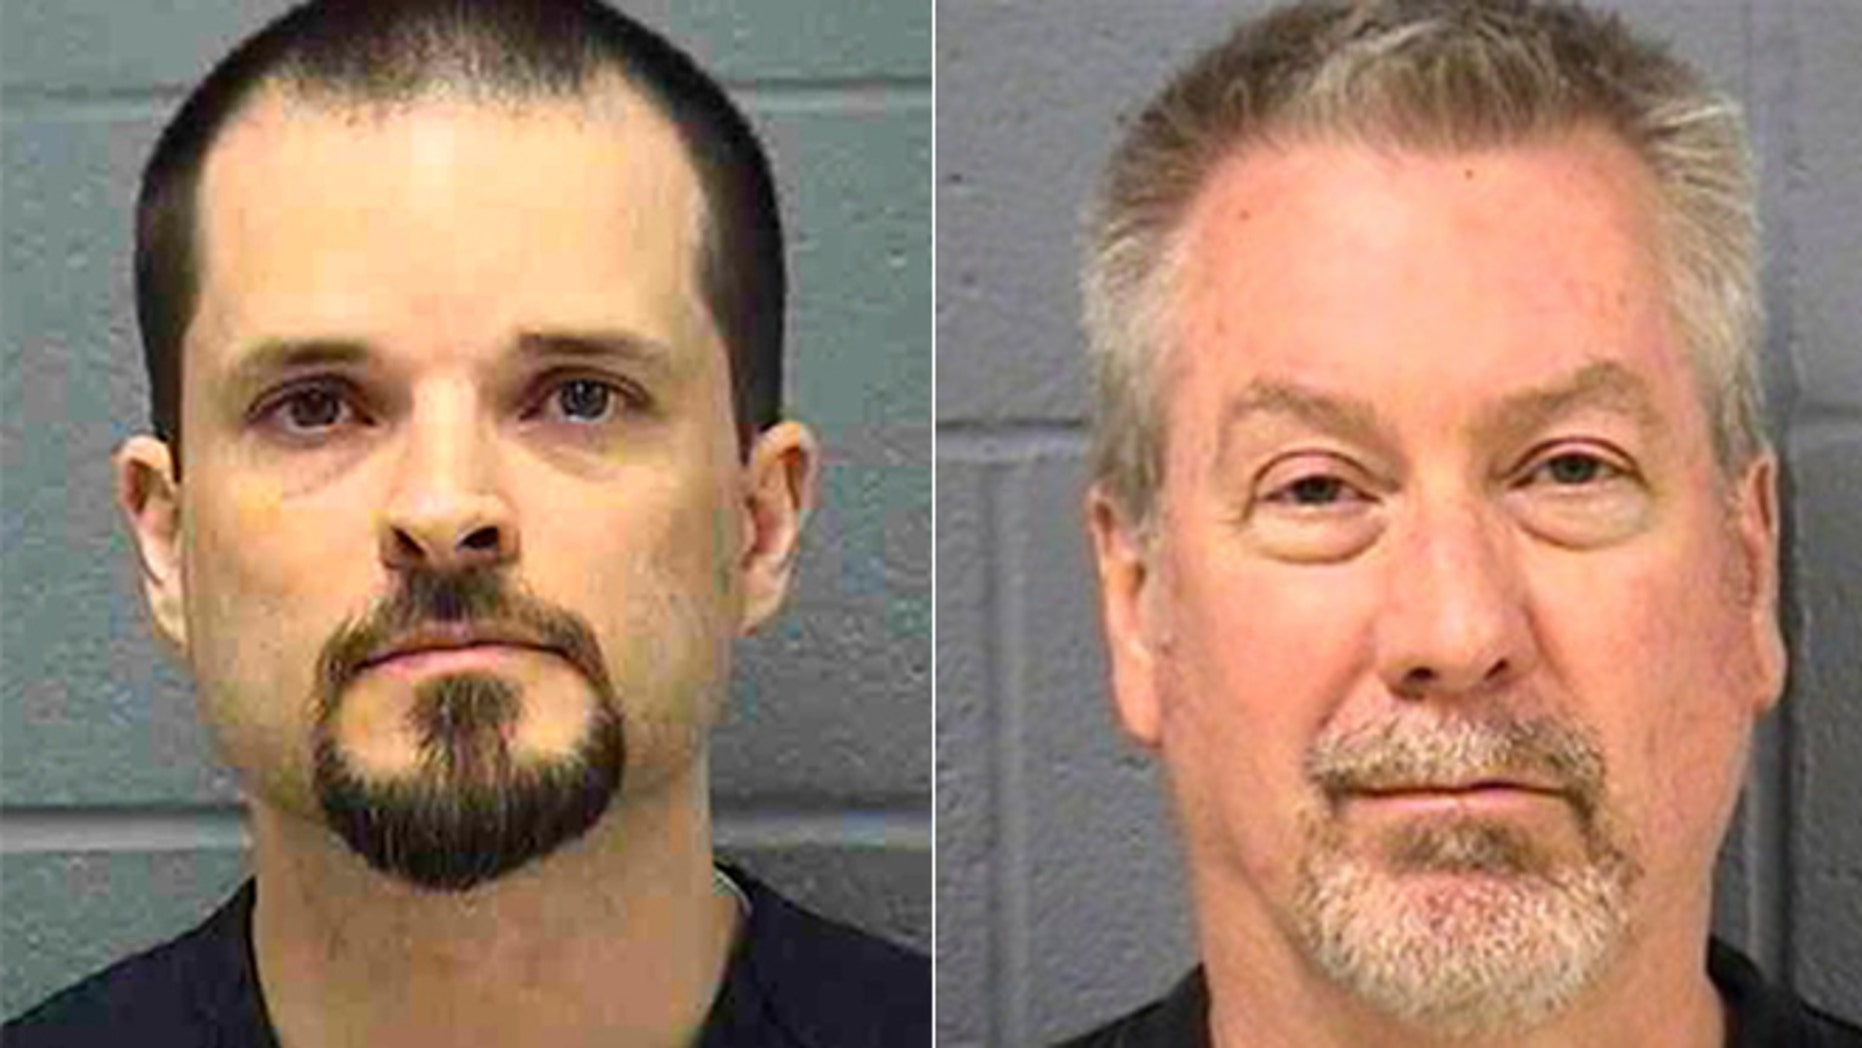 Christopher Vaughn, left, was convicted of fatally shooting his family in their SUV. His trial overlapped with the high-profile trial of Drew Peterson